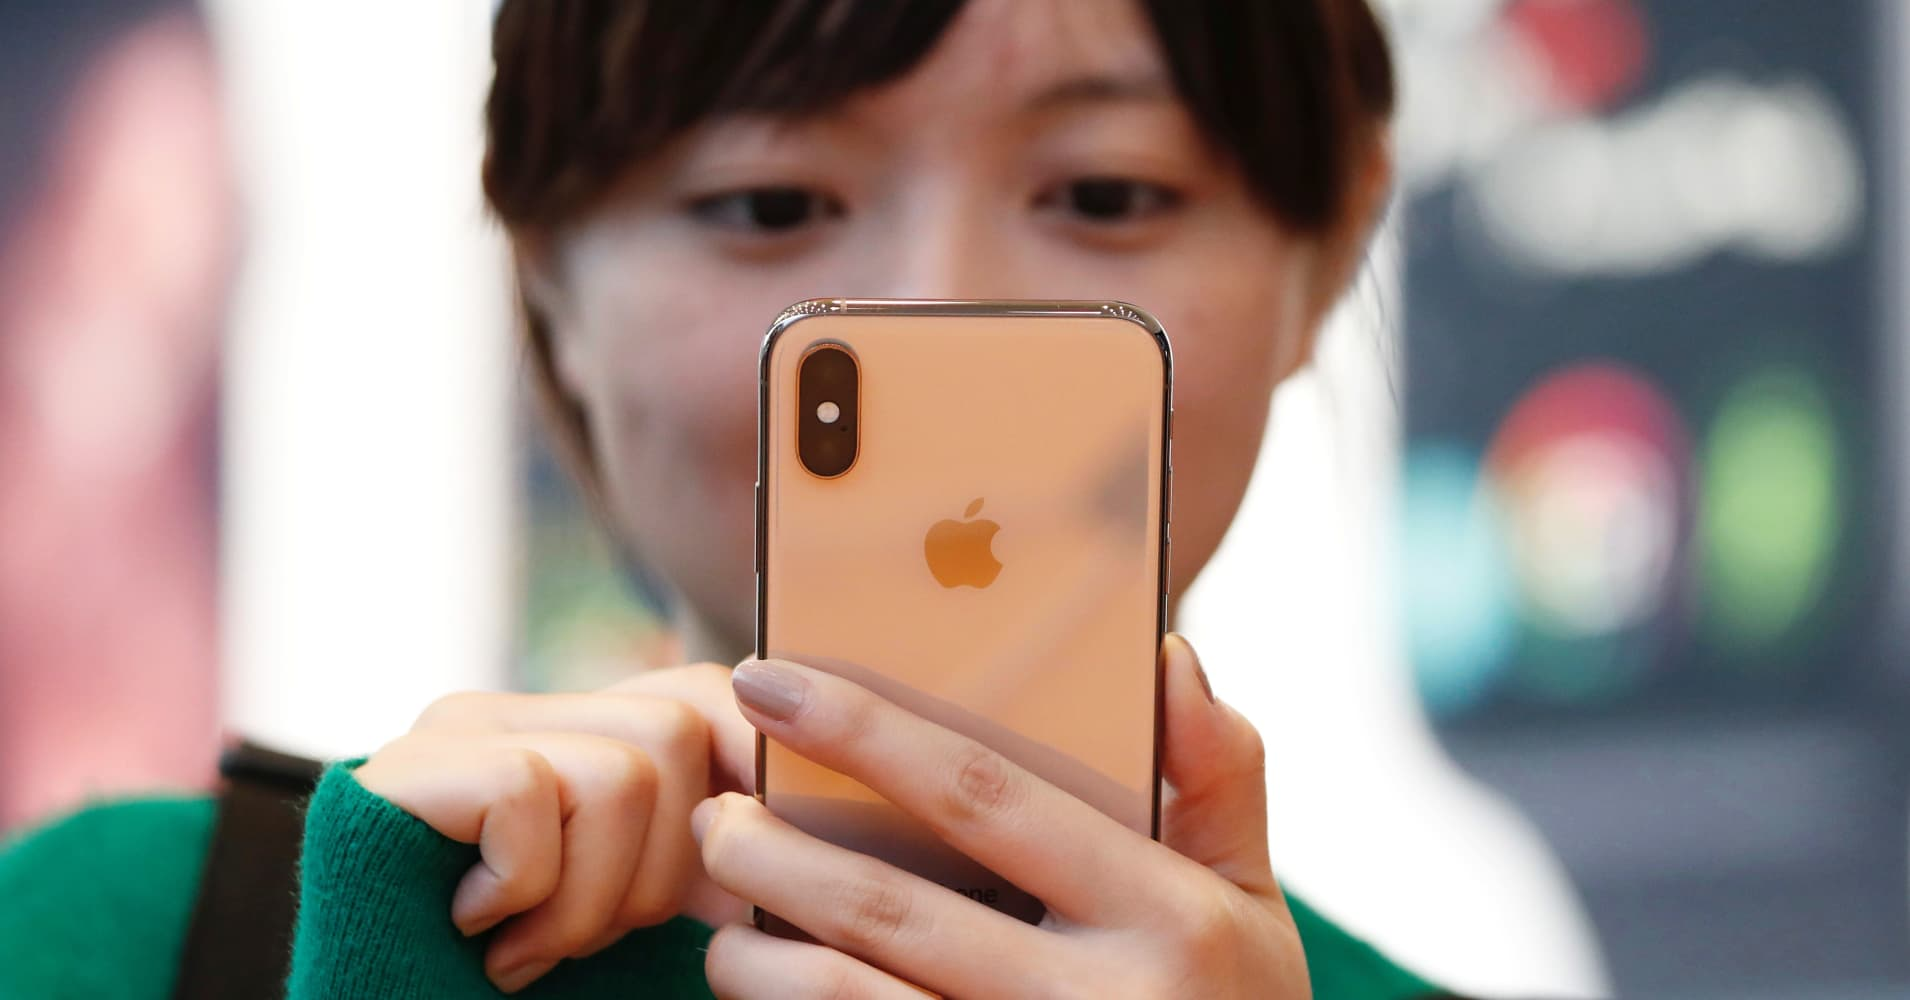 Apple will release a 5G iPhone in 2020 with chips from Qualcomm and Samsung, top analyst says